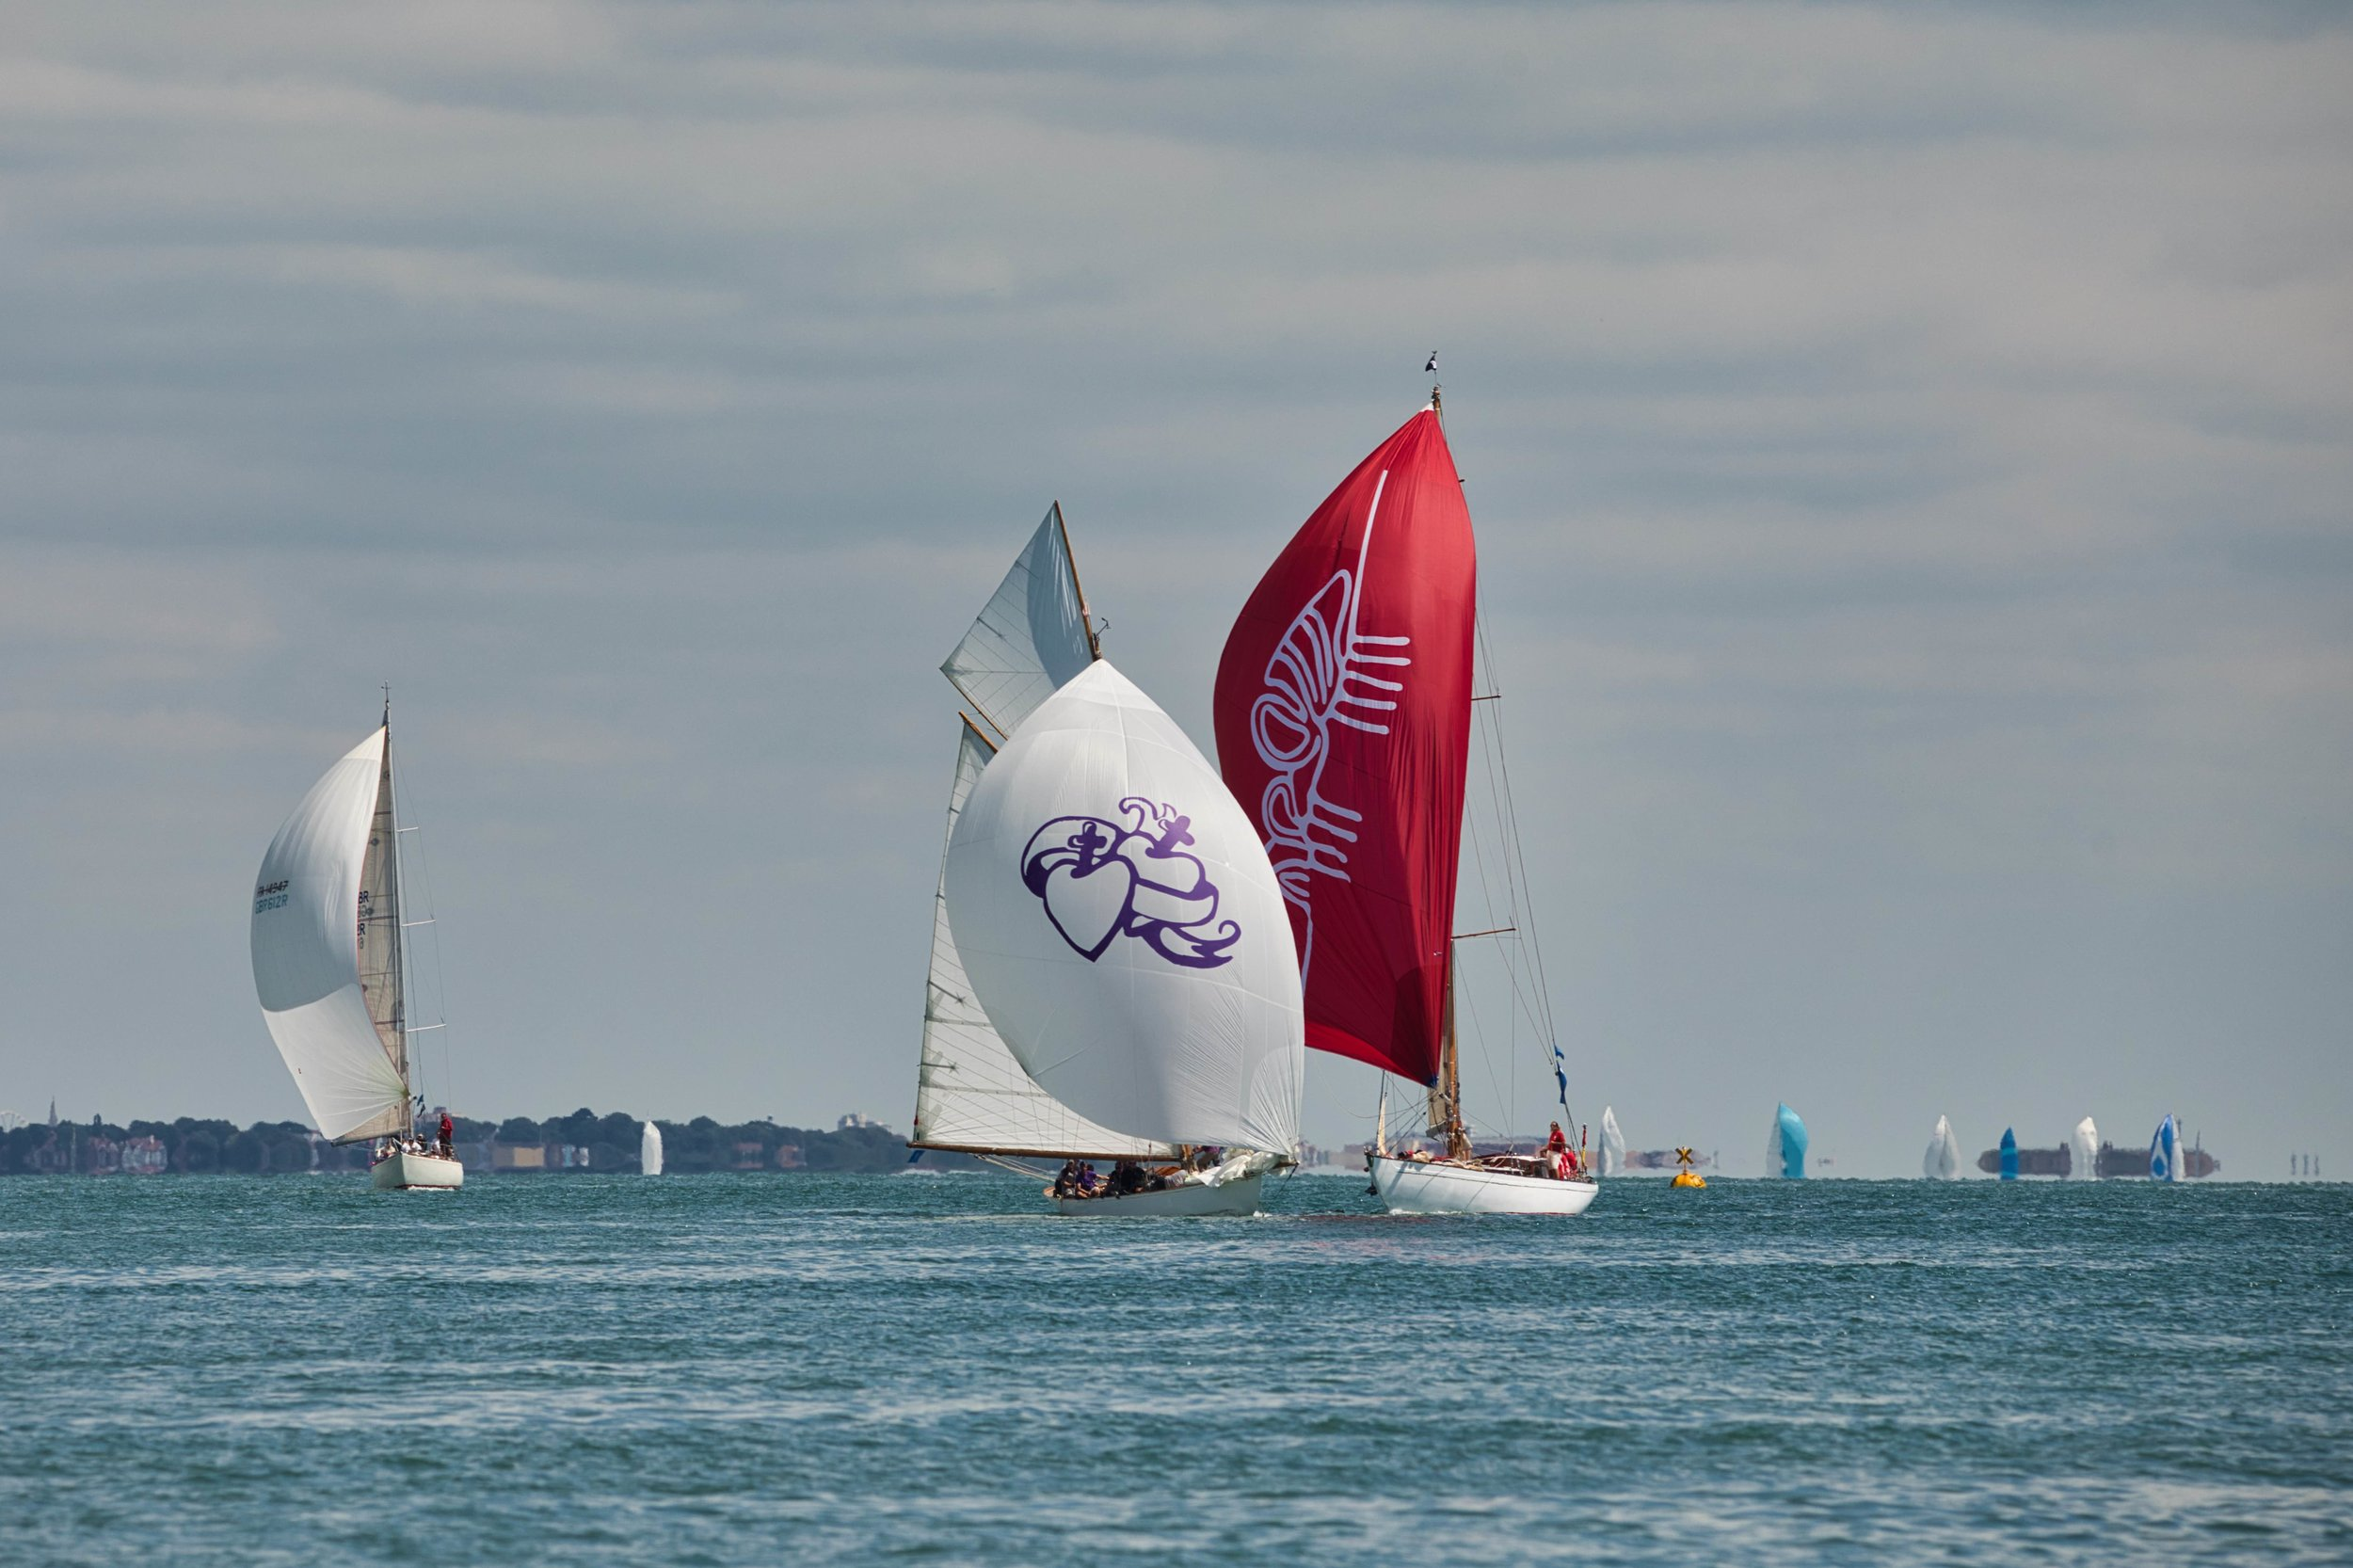 Fife Gaff Cutter Viola keeping pace with Laurent Giles 7/8 Sloop Cetewayo